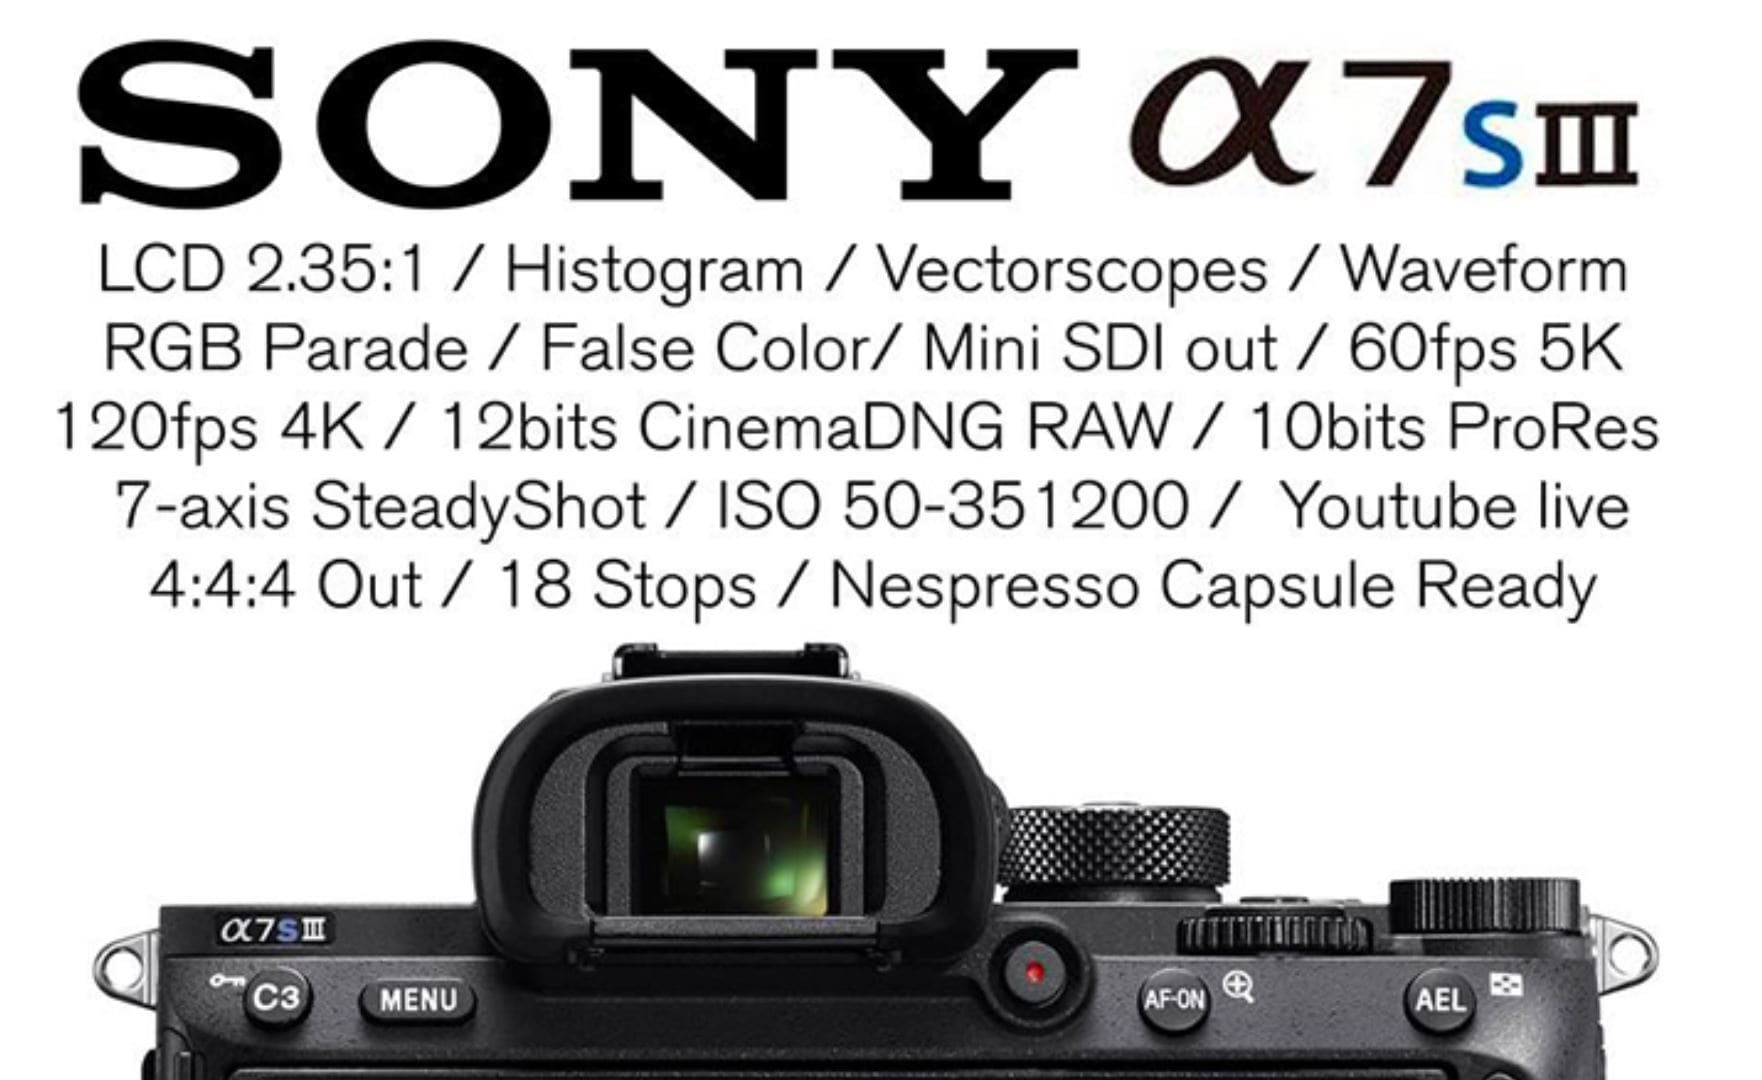 Sony A7SIII Rumors